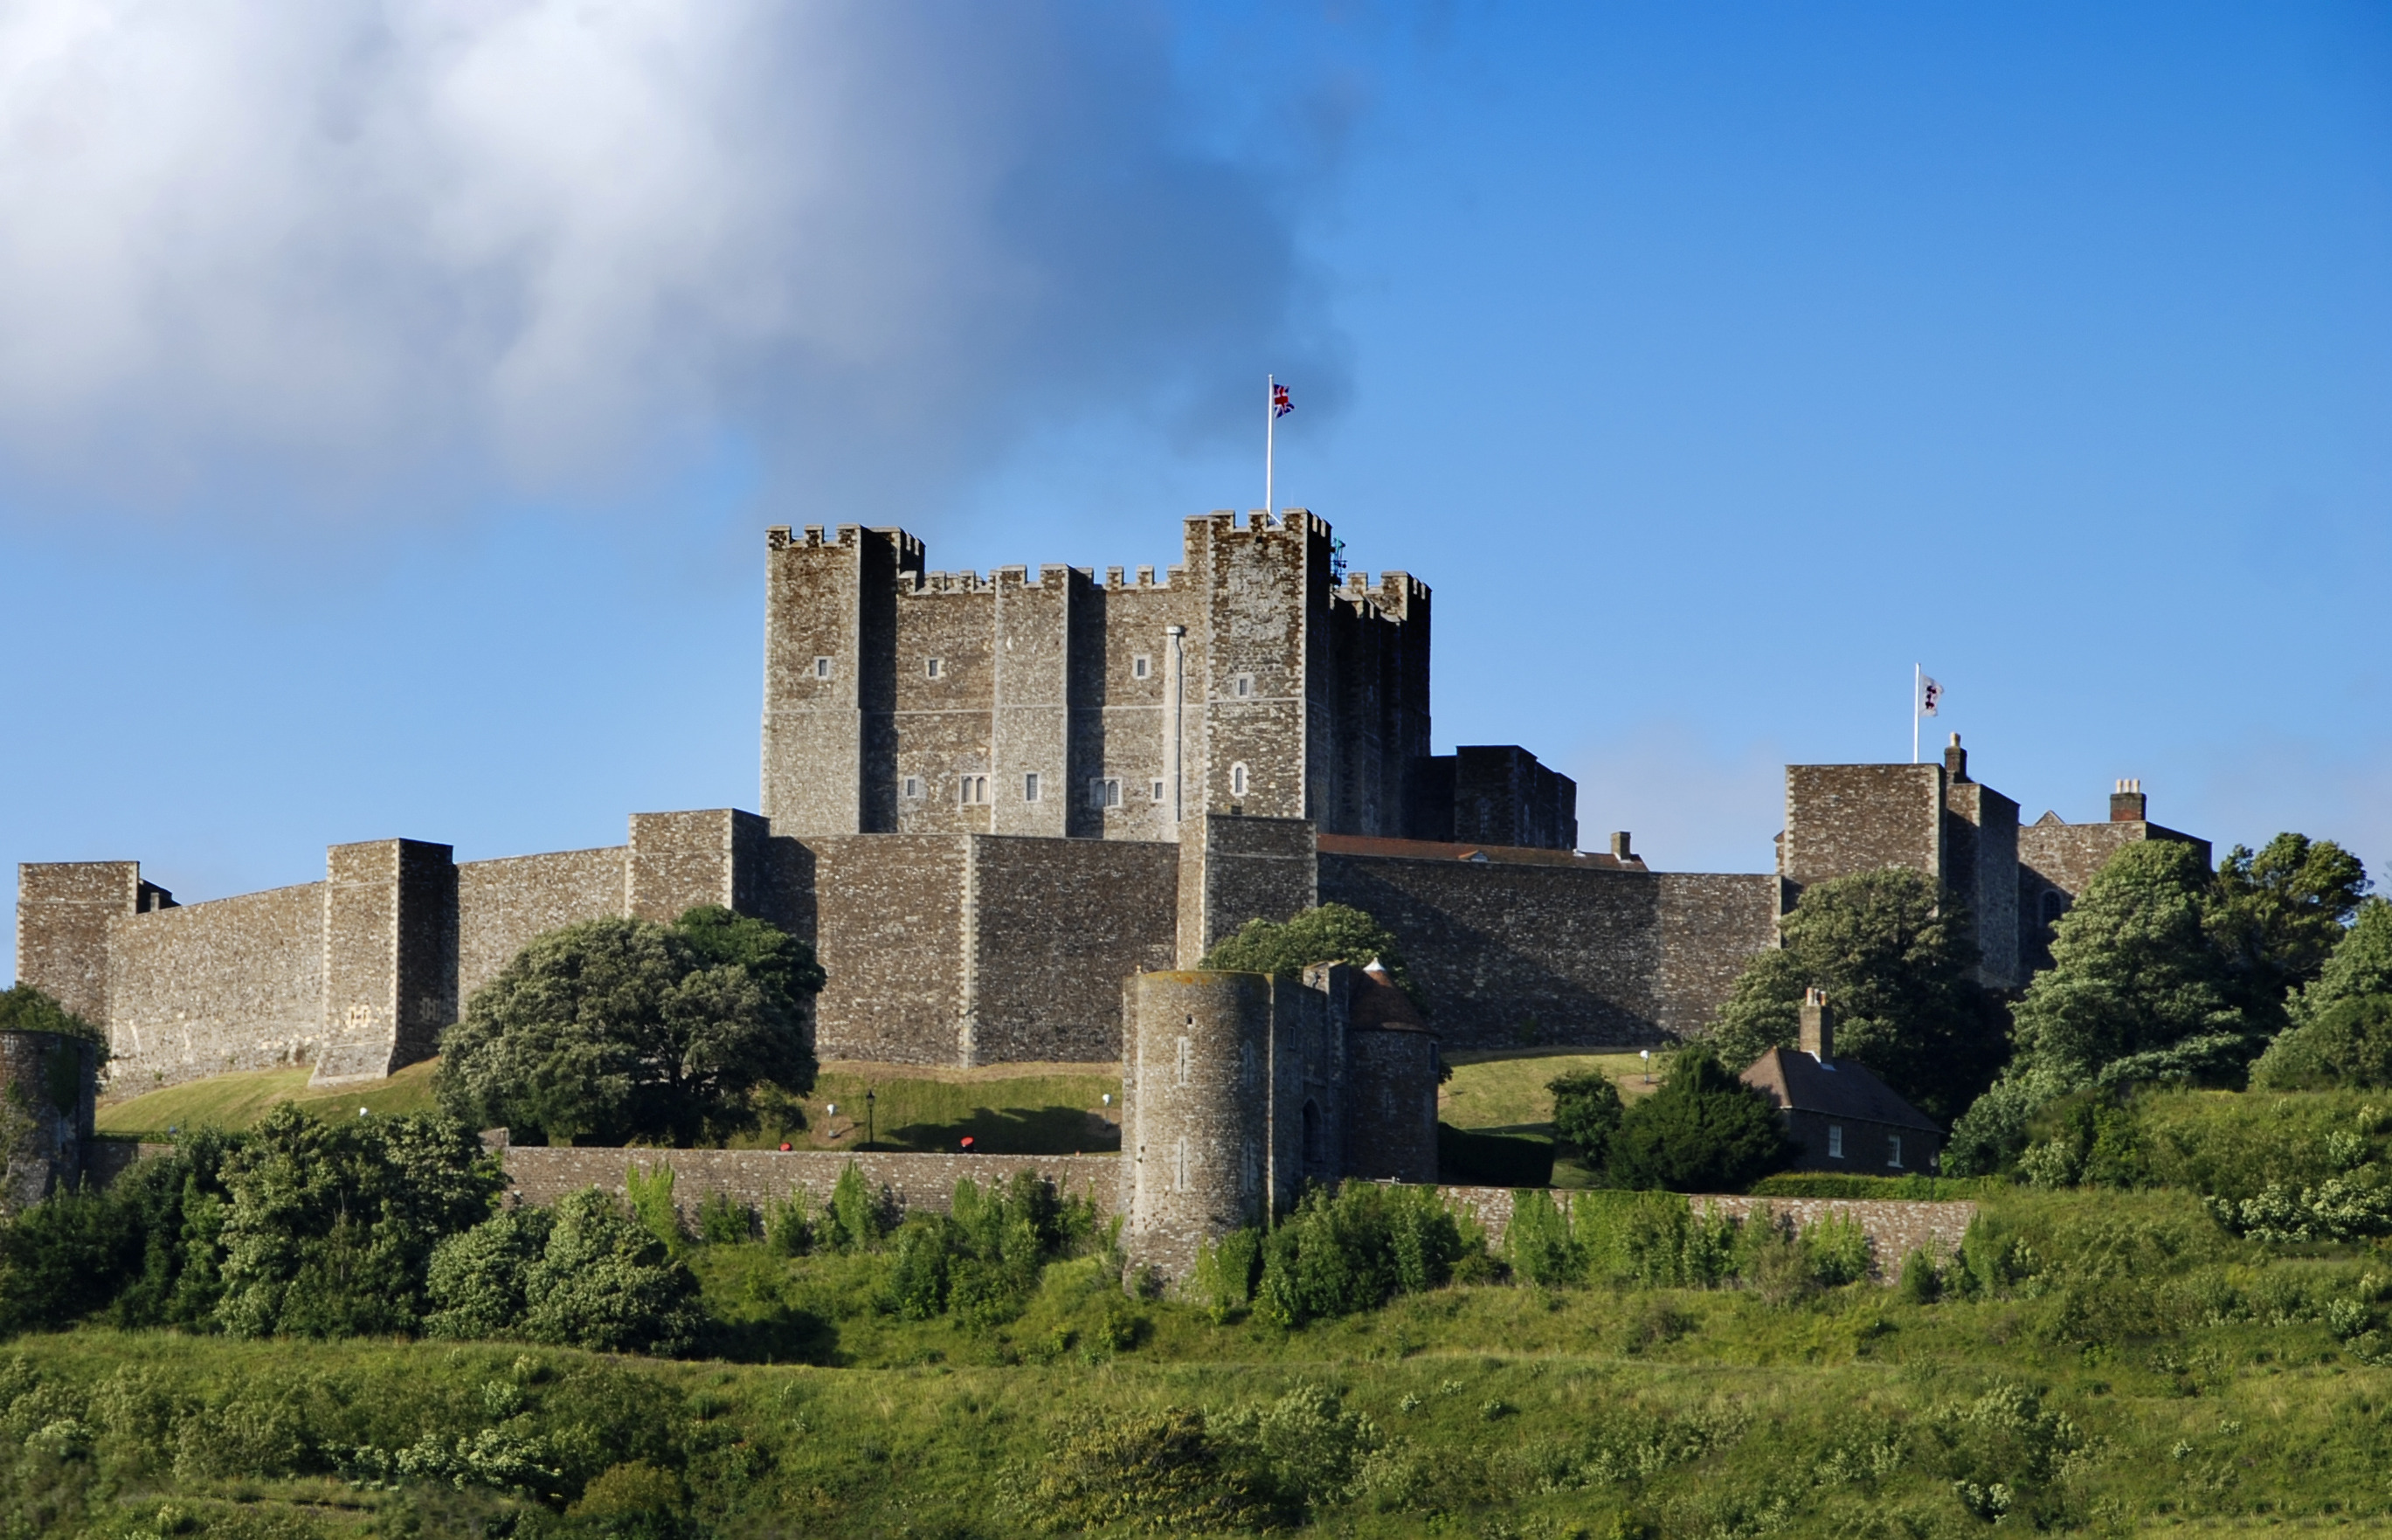 the dover castle Over castle is situated at the shortest sea crossing of english channel this has made it one of the most important defensive sites in britain.